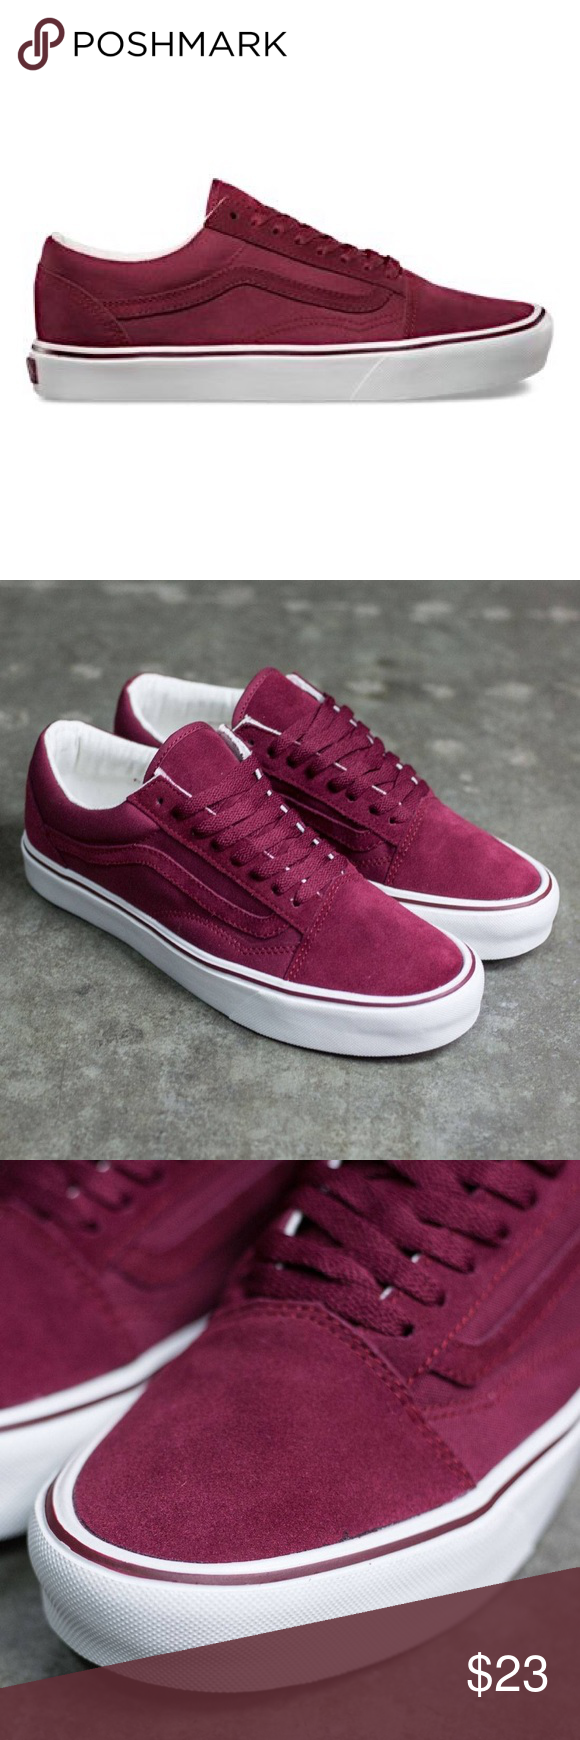 20ded55d7a6 Burgundy  Maroon Old Skool Vans Lite Mono Worn many times but in good  condition